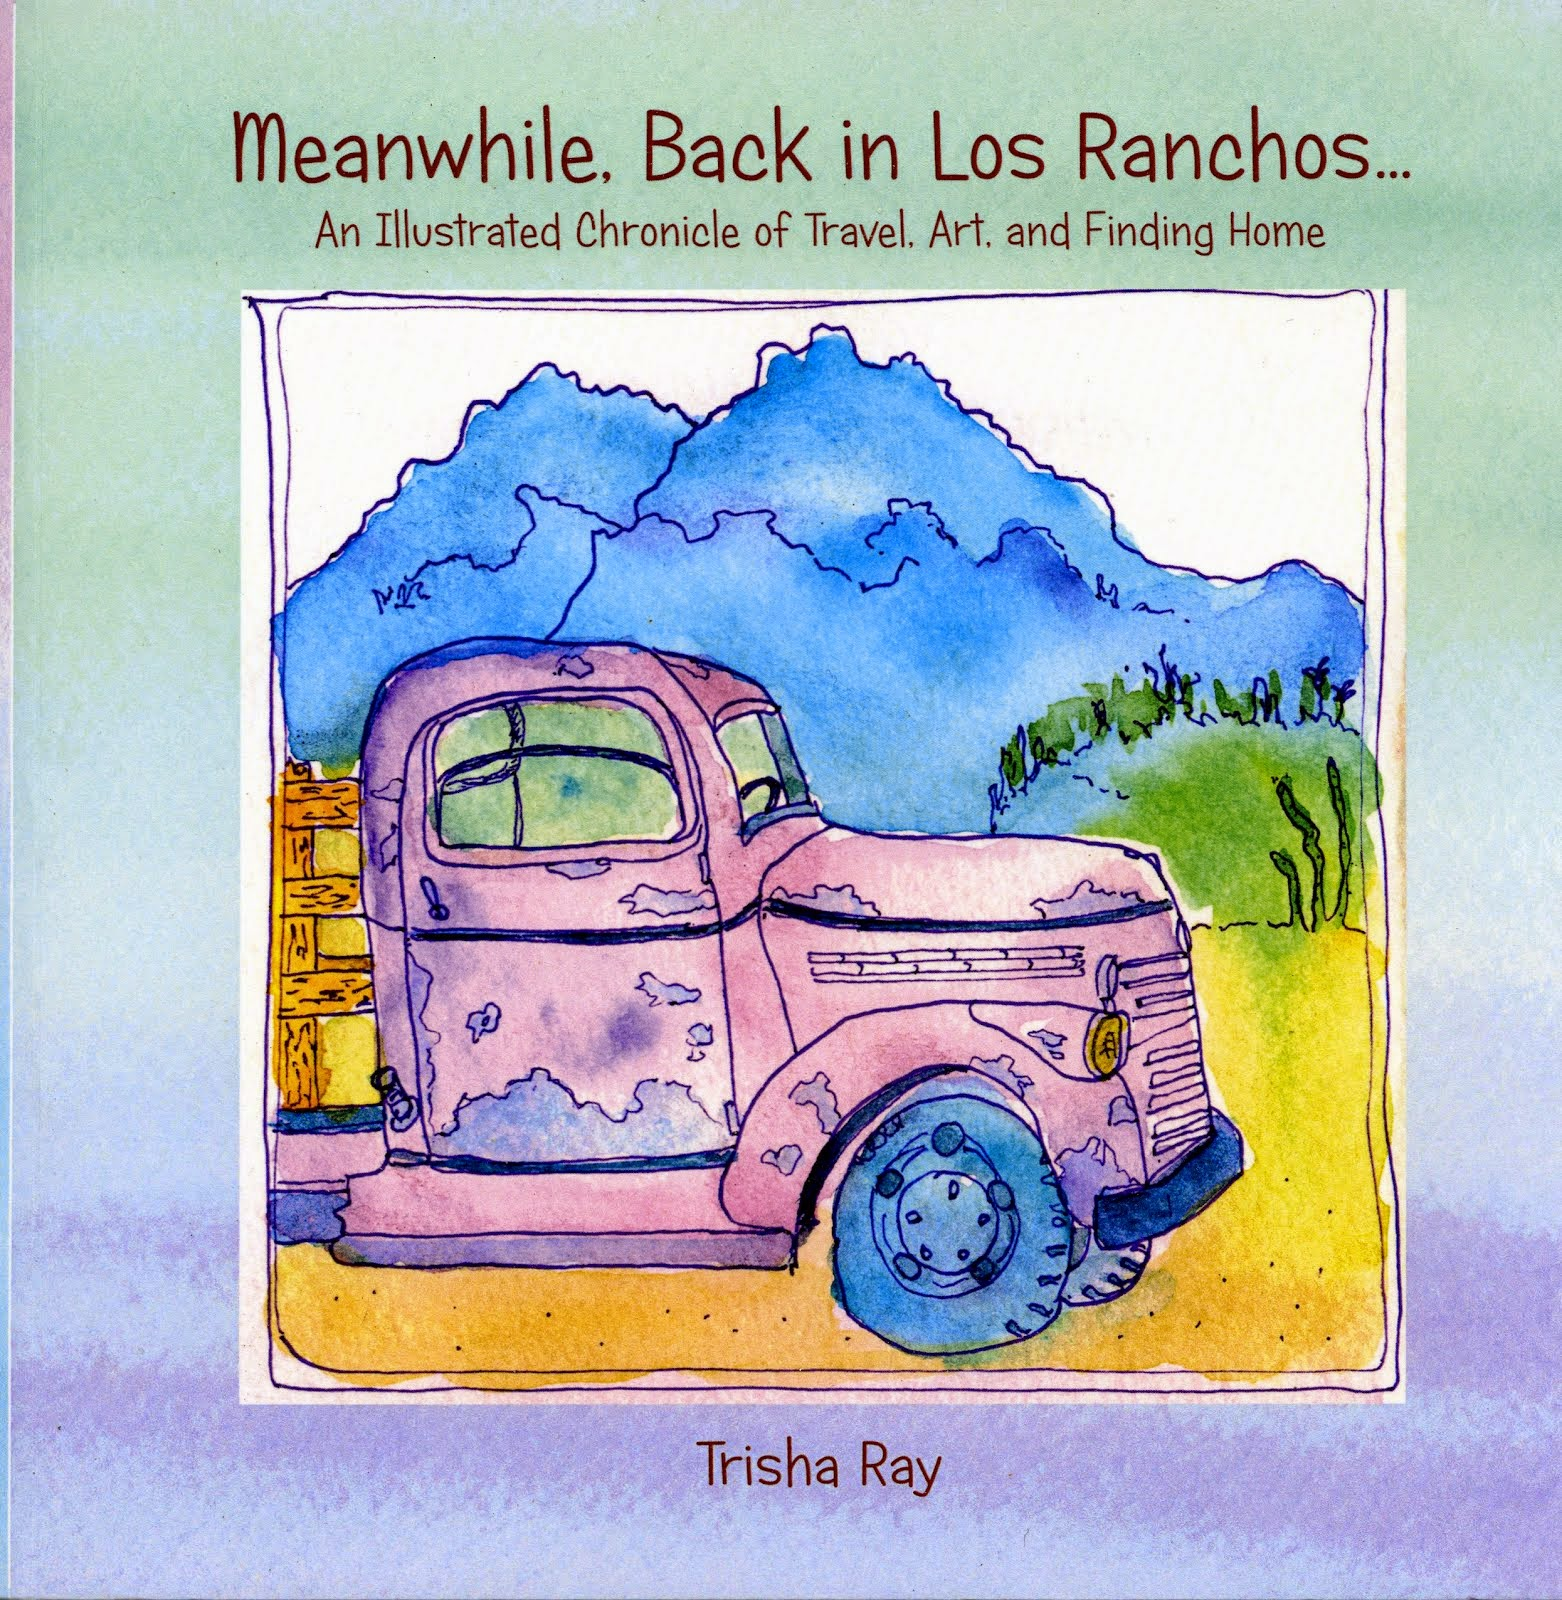 Meanwhile, Back in Los Ranchos - Travel Adventures and Watercolor Art